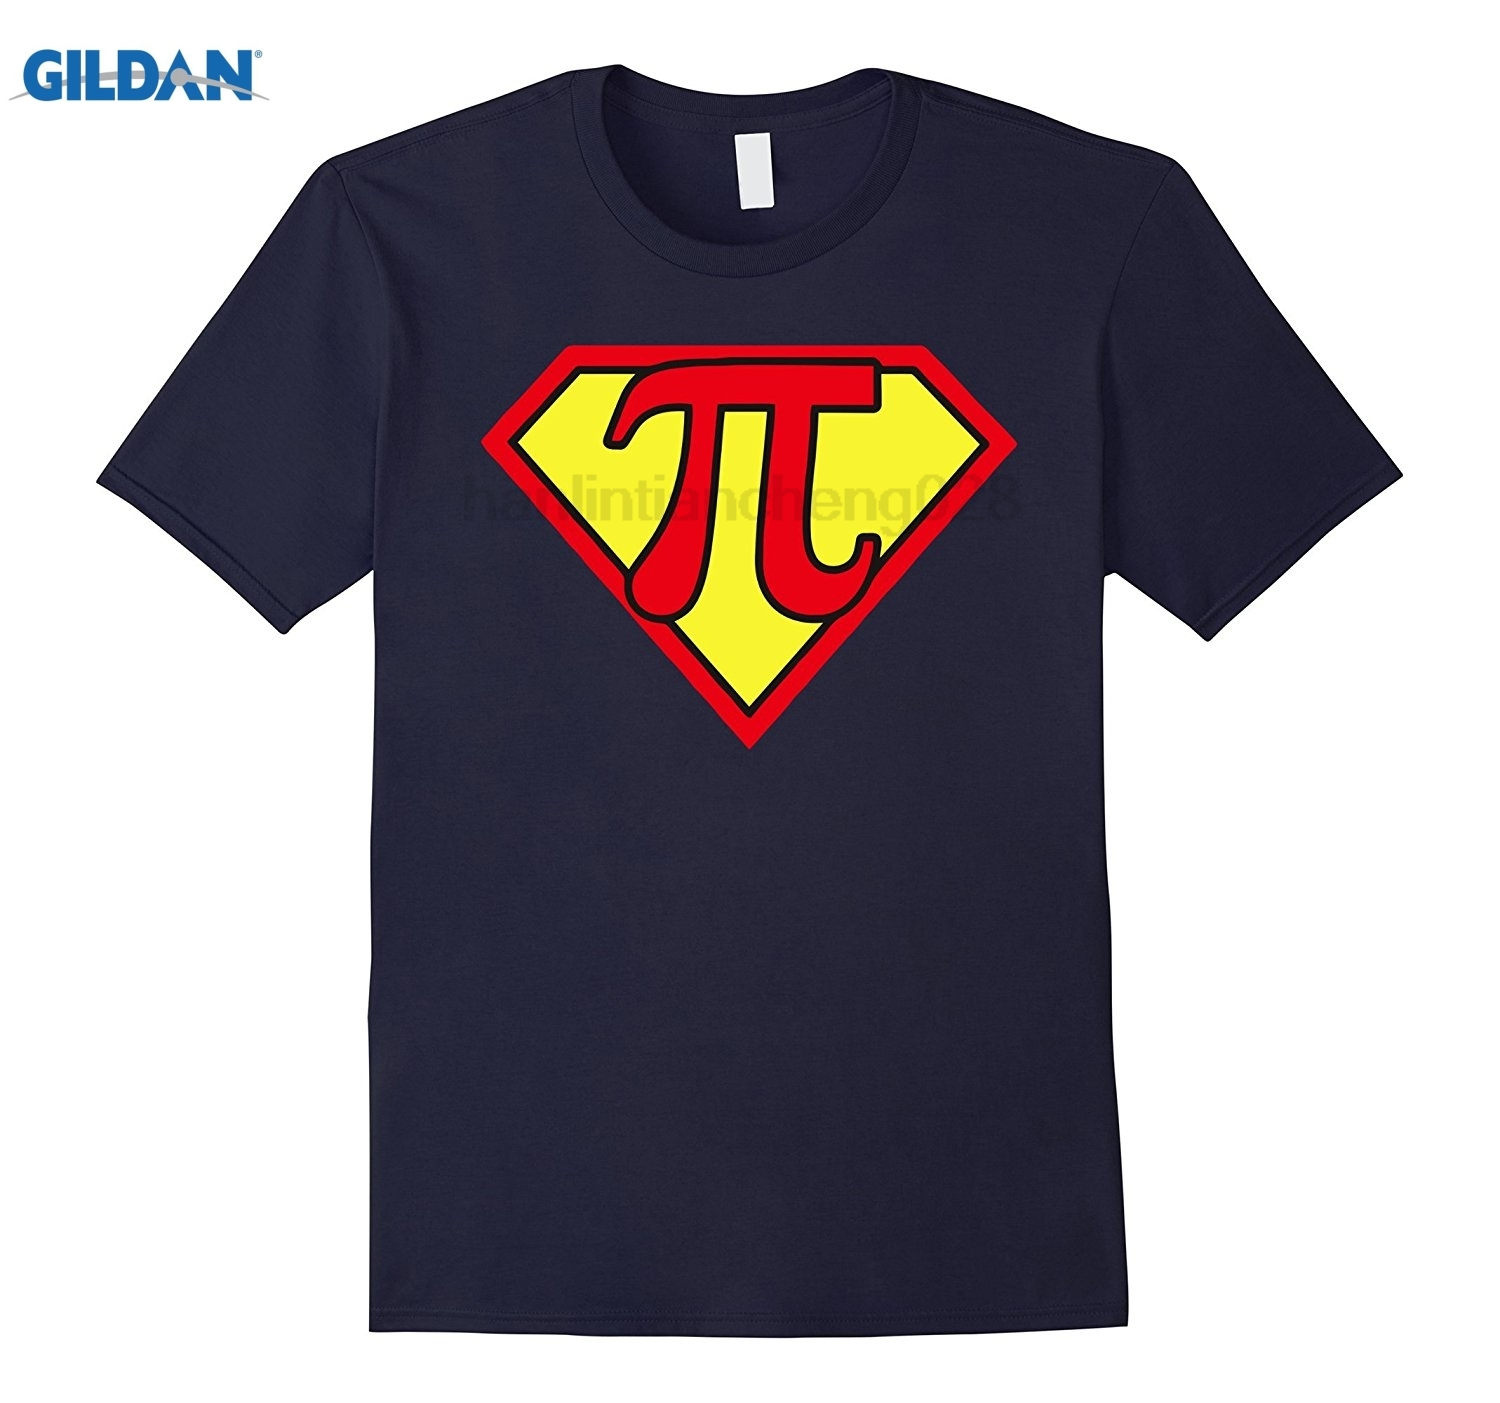 GILDAN Pi Day 2017 Funny Pi Superhero Style T-Shirts for Math Geeks